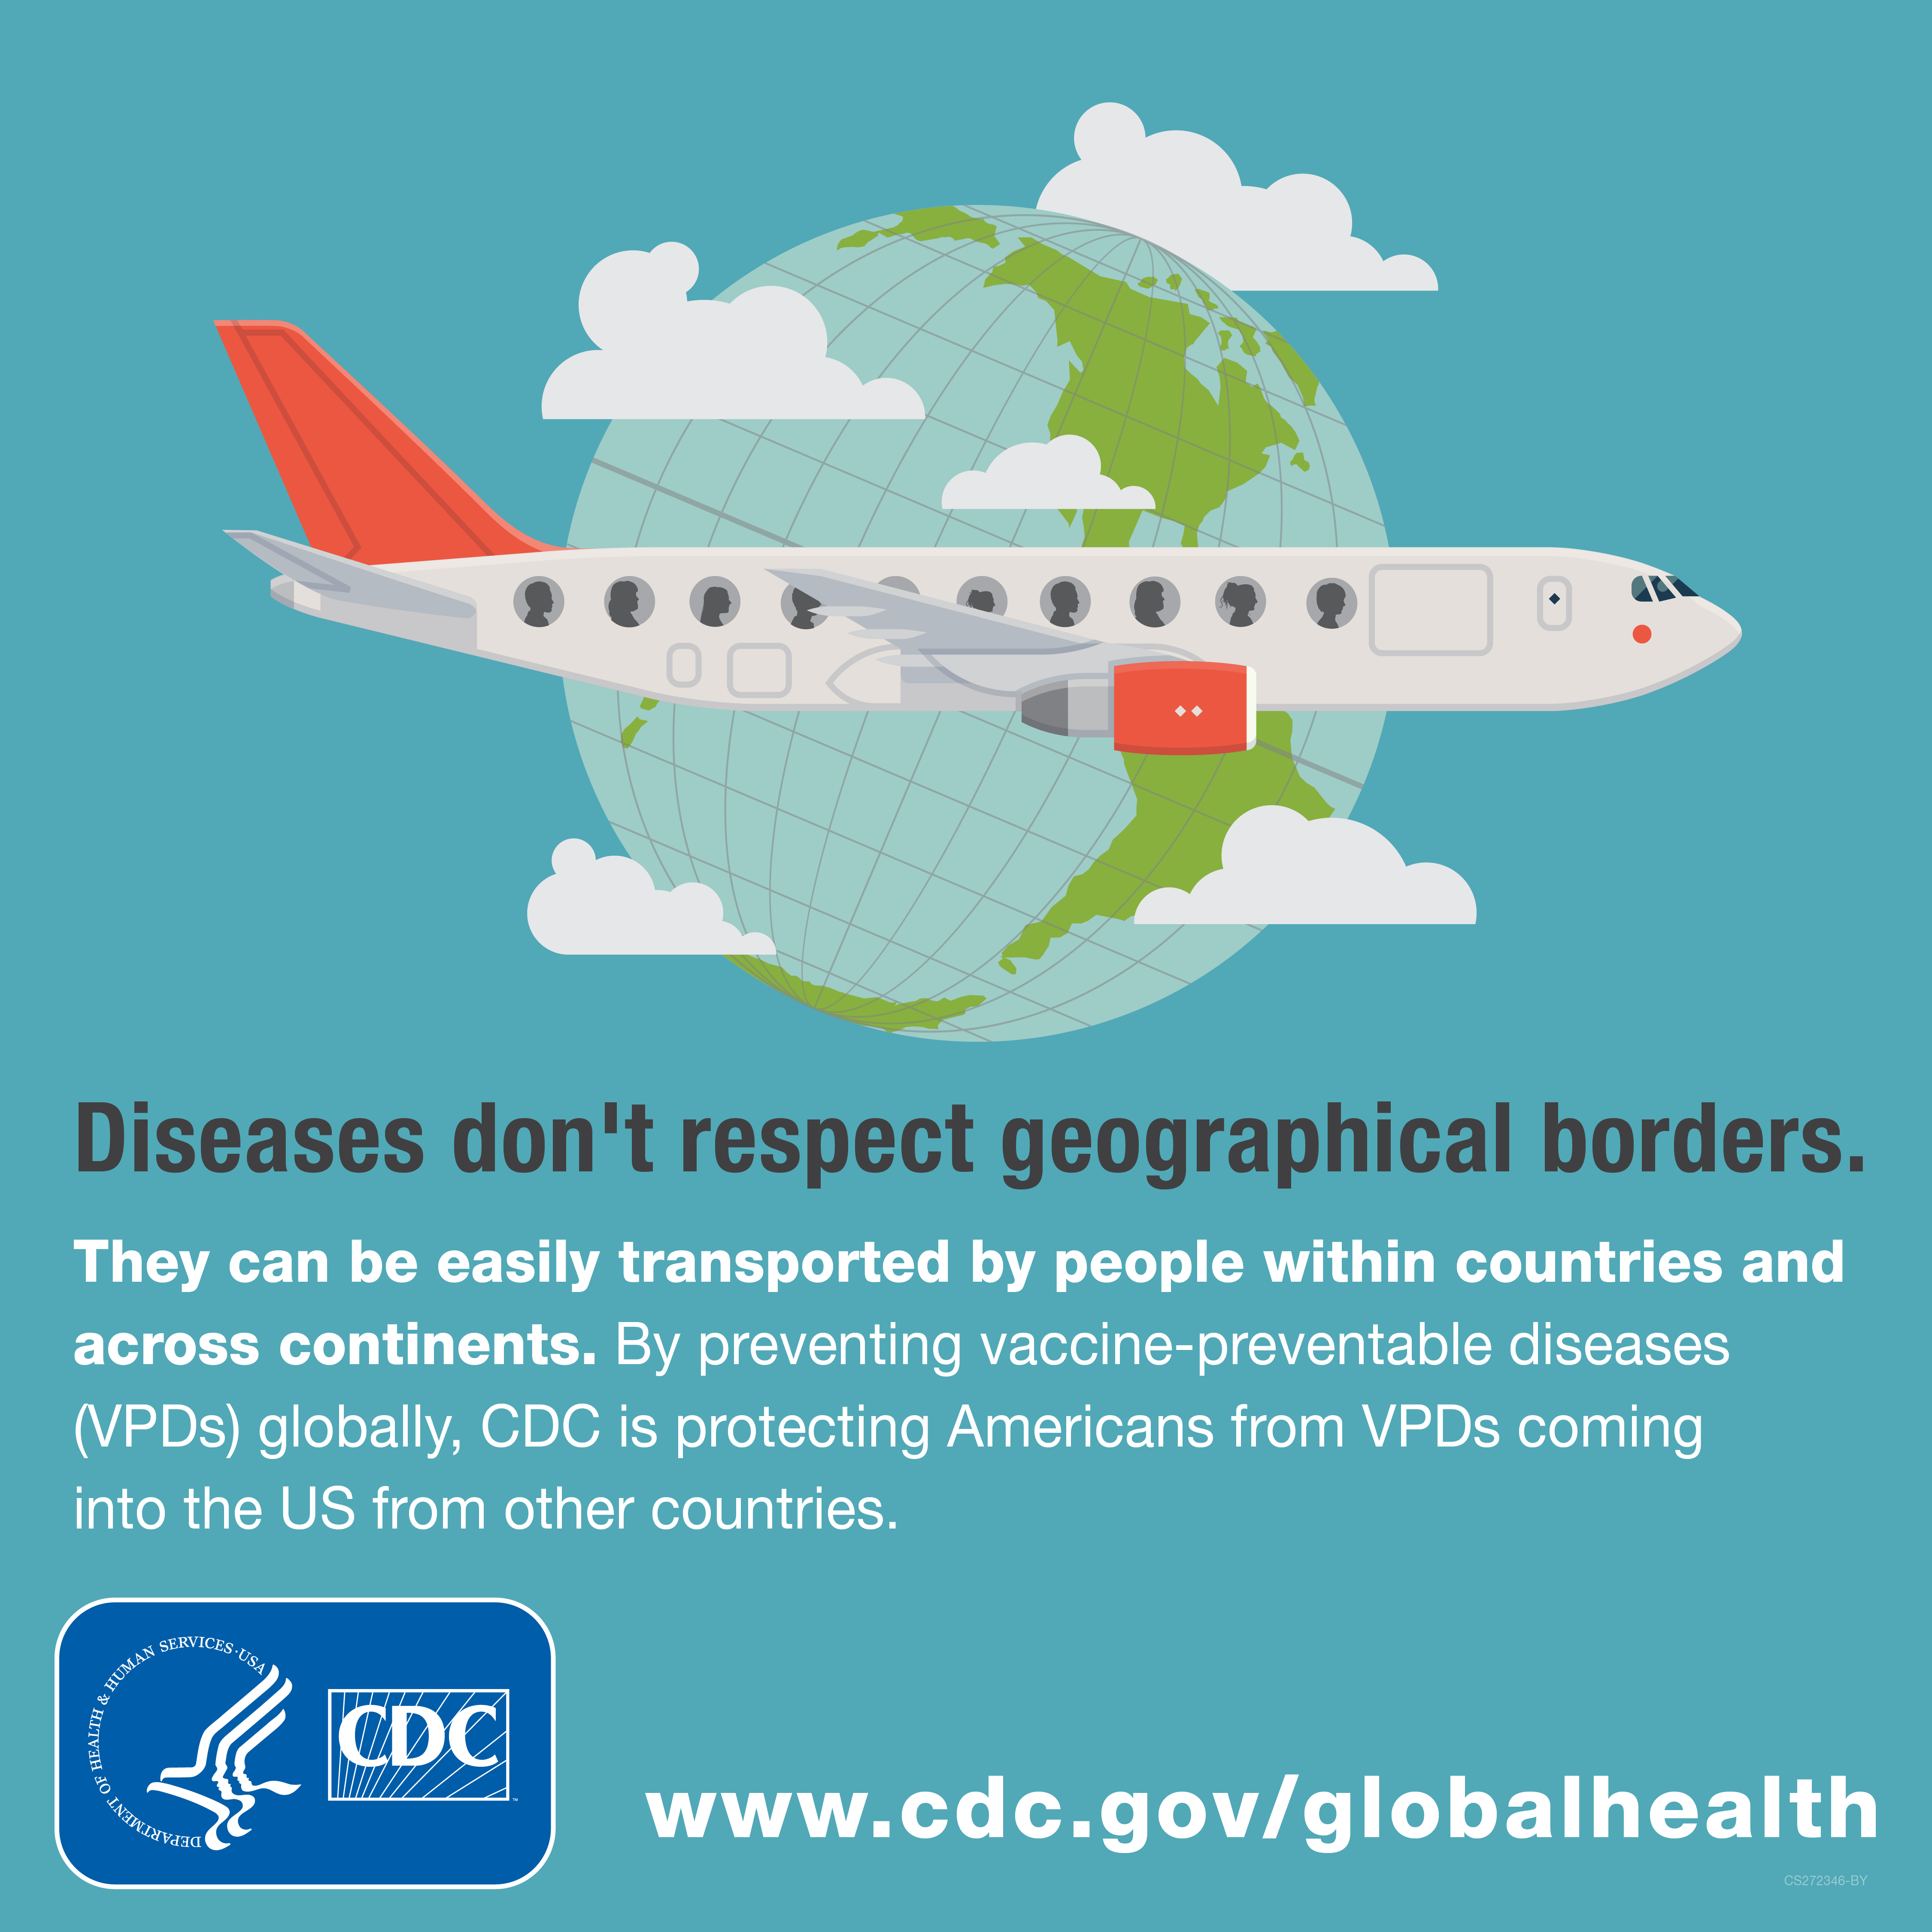 Diseases don't respect geographical borders